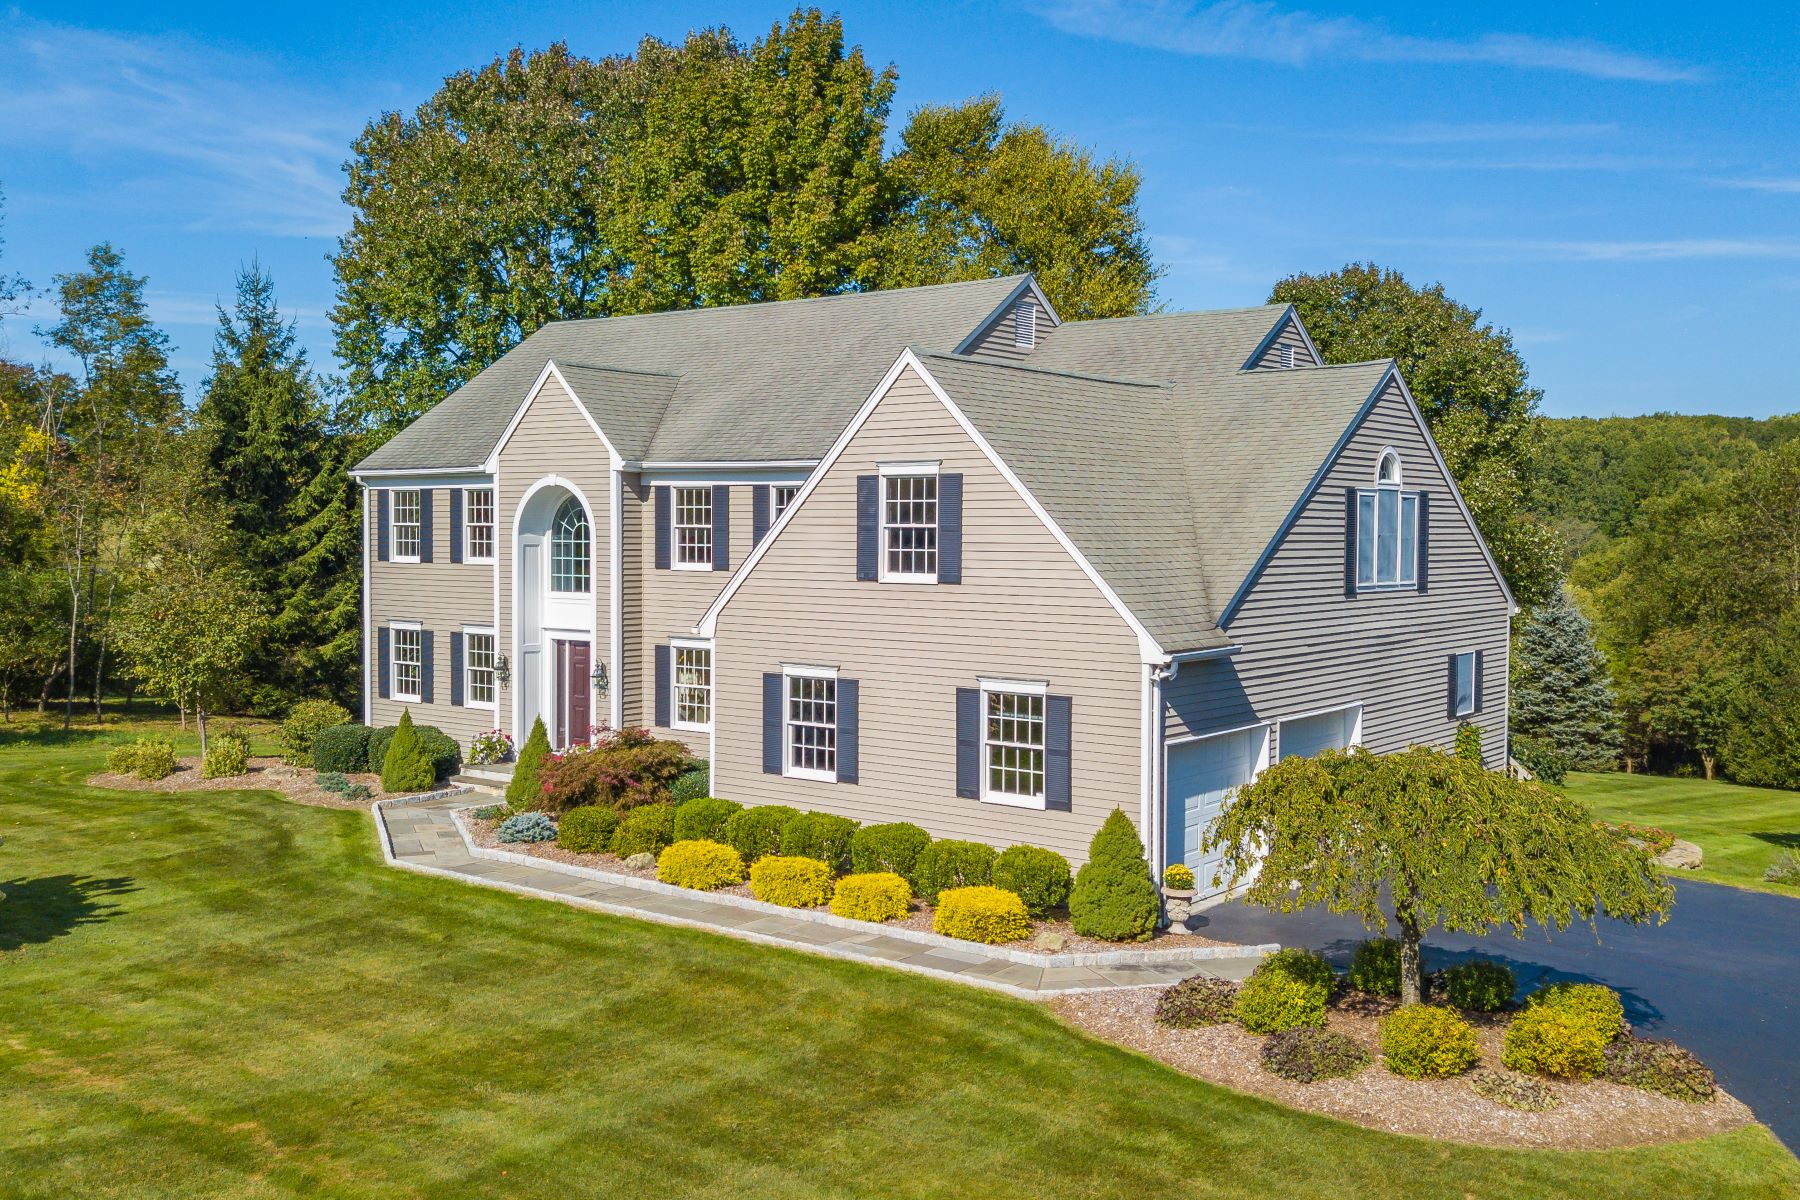 Single Family Homes for Active at Impressive Colonial On Premier Lot 21 Fox Ridge Drive New Milford, Connecticut 06776 United States